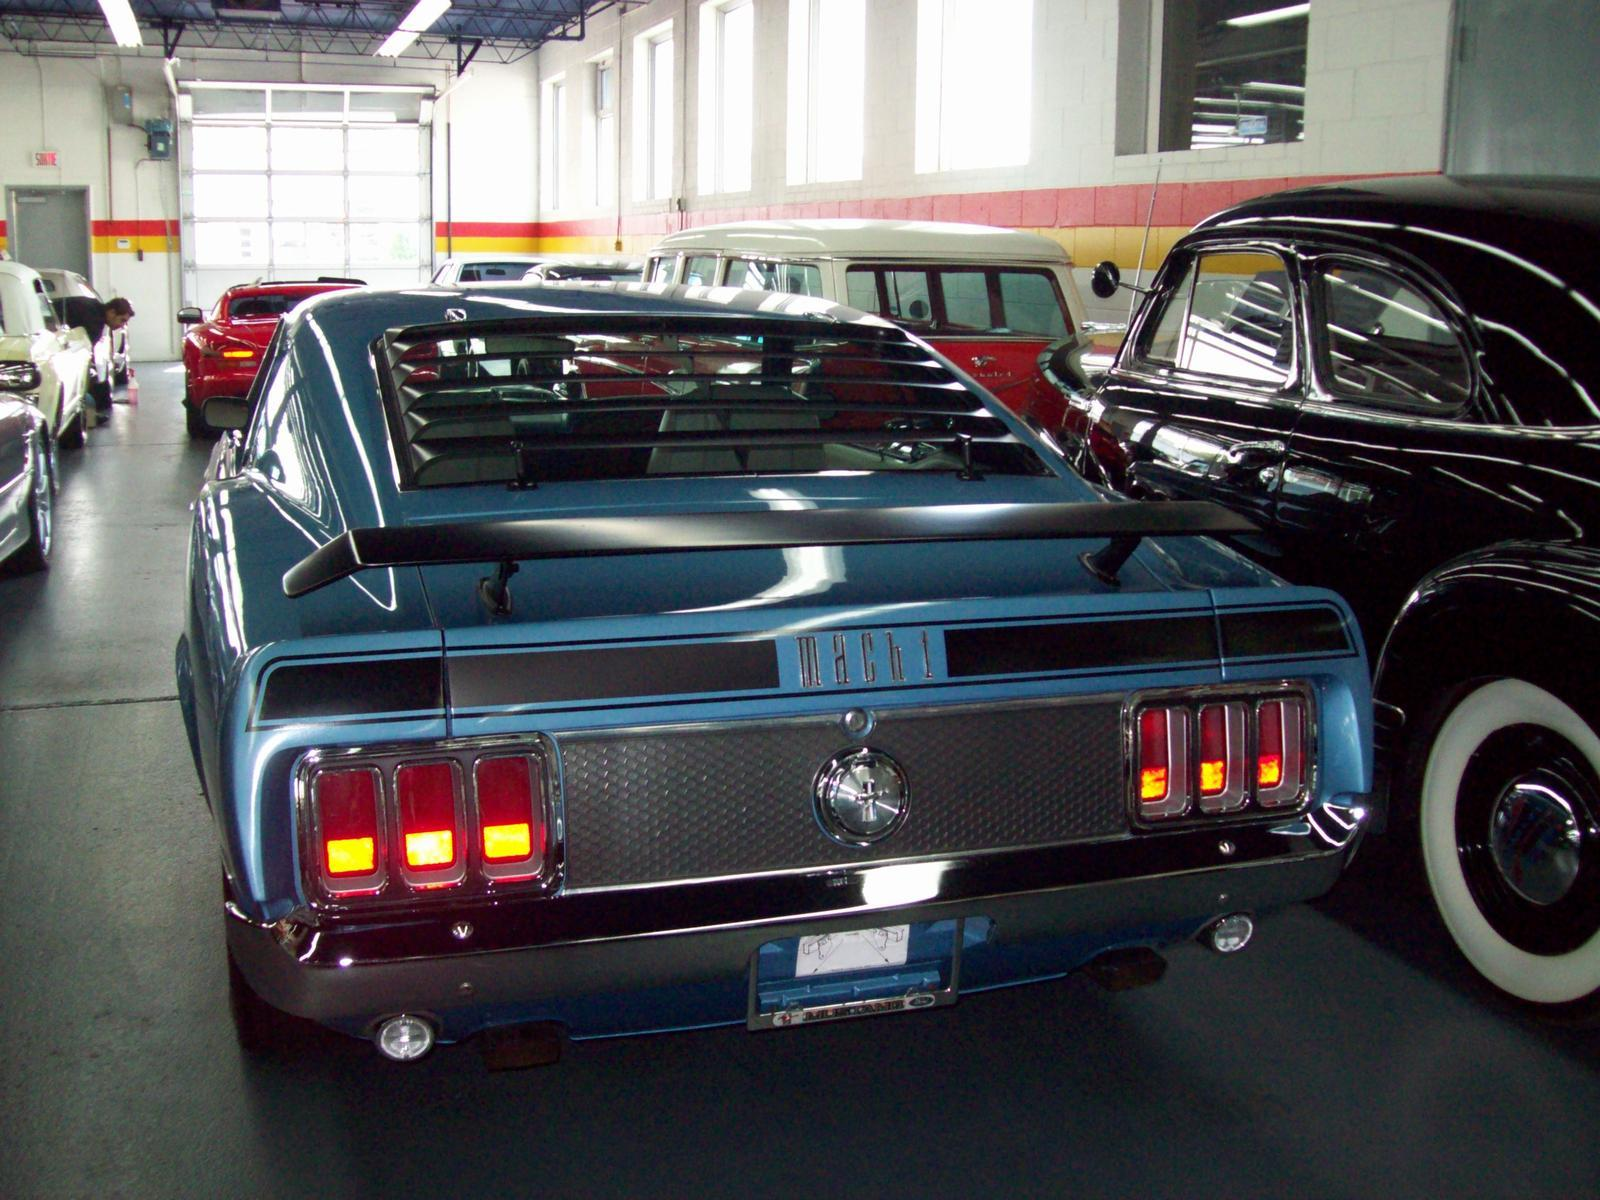 Used 1970 Ford Mustang Mach 1 For Sale In Saint Lonard John Gt Fastback Scotti Classic Cars H1r 2y7 2070740